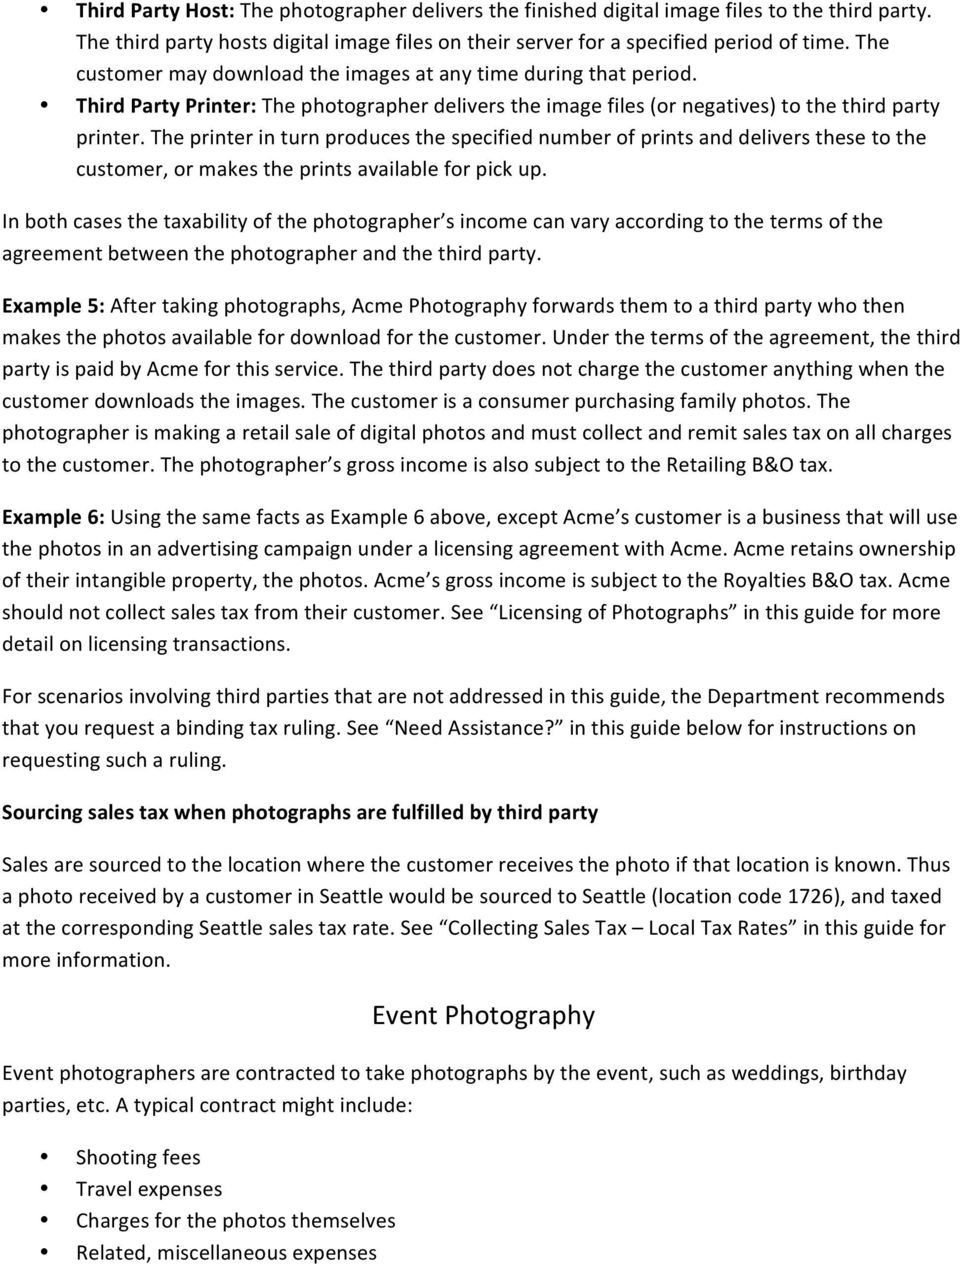 Seattle Sales Tax Rate >> Photography Tax Guide Pdf